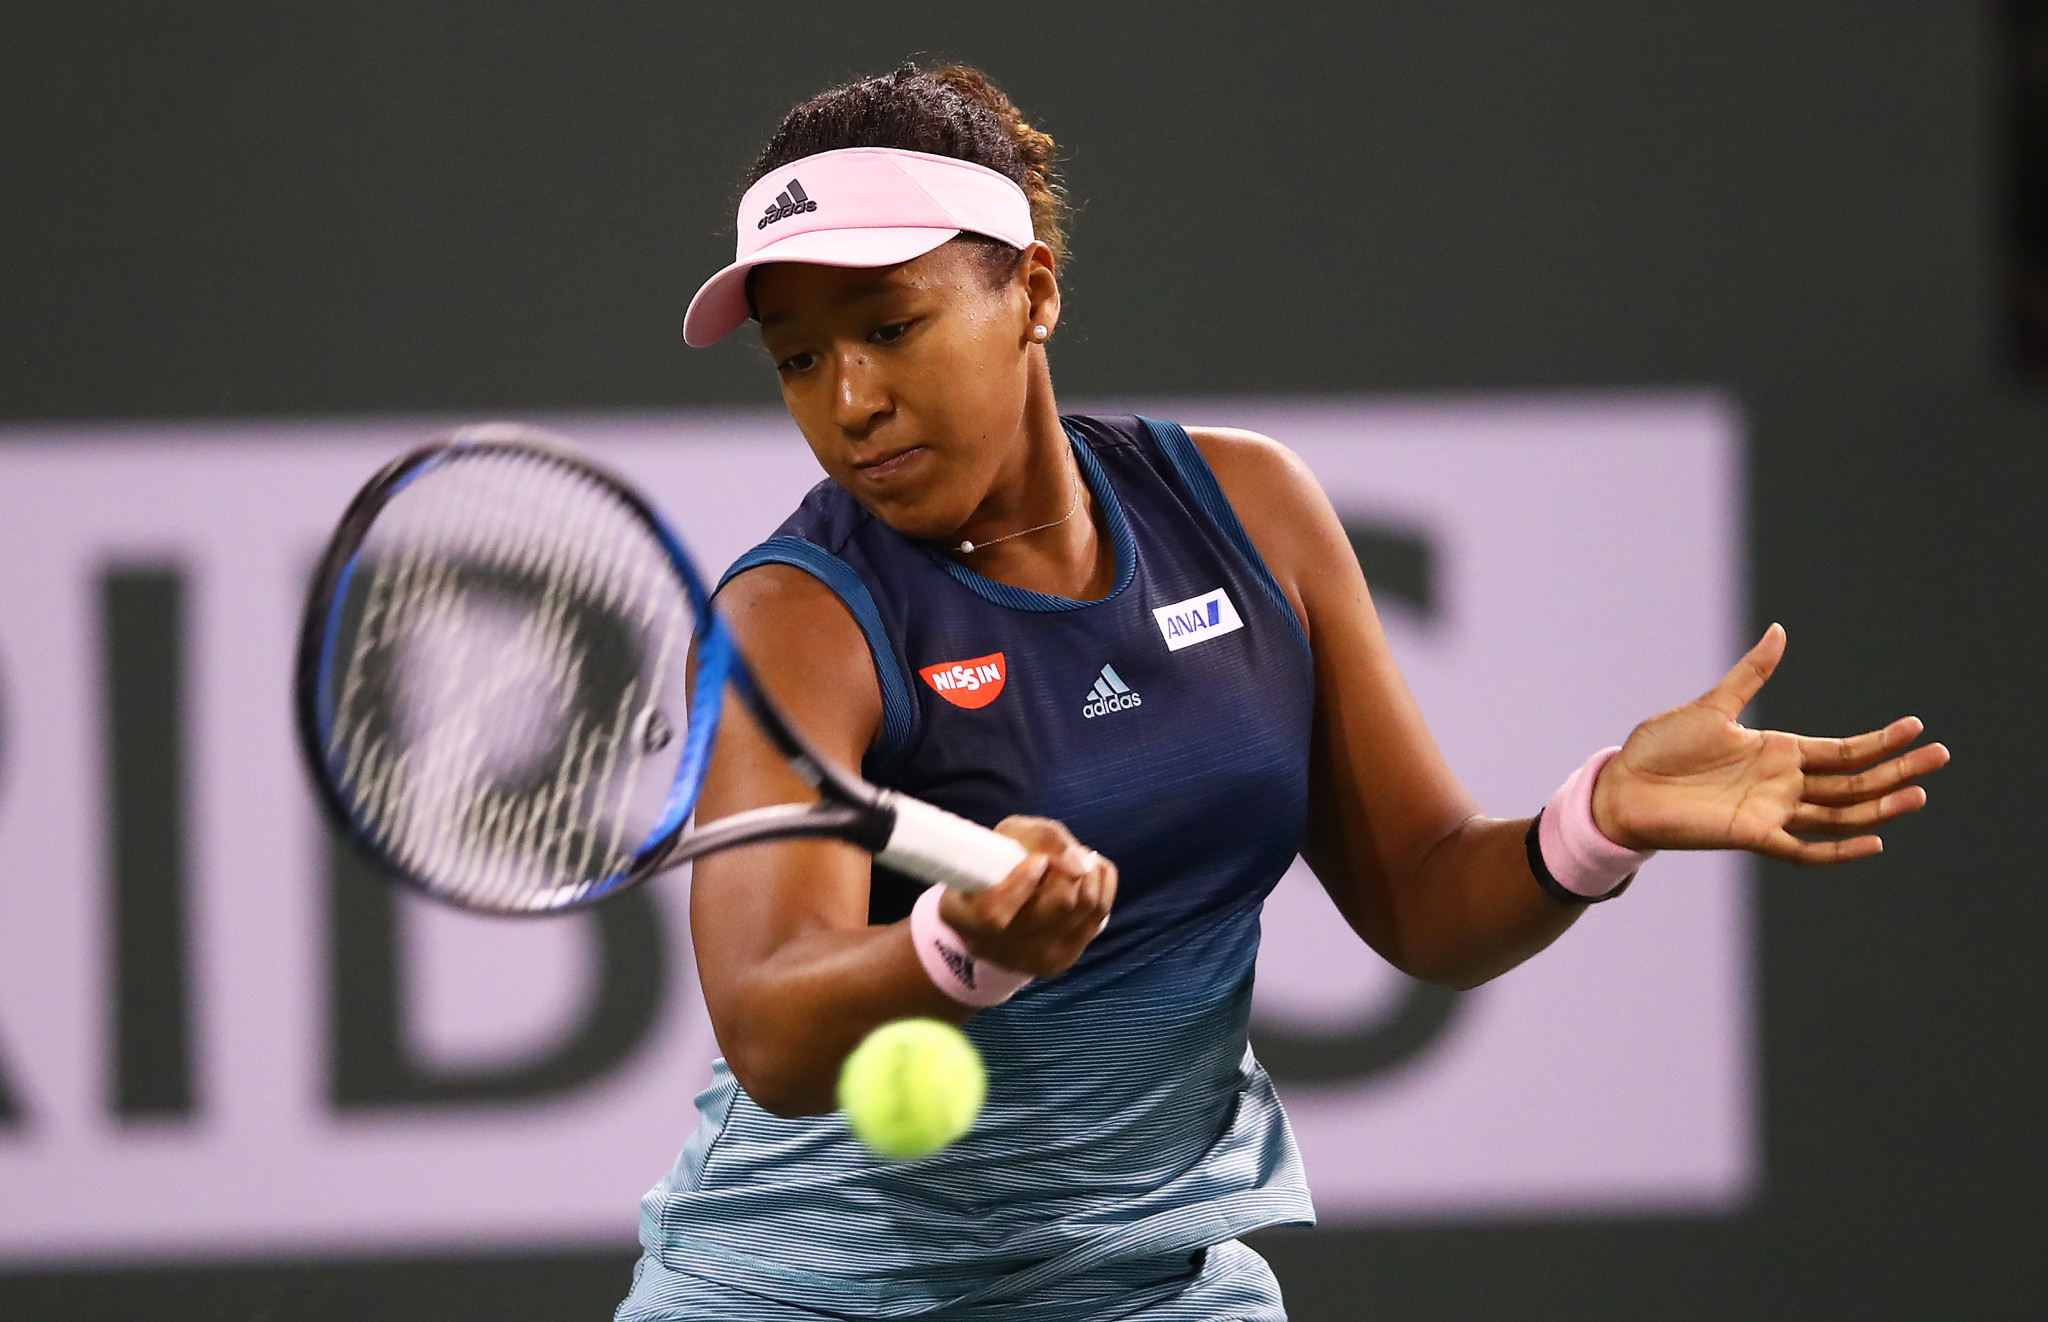 Women's world number one Naomi Osaka also booked her place in the third round ©Getty Images